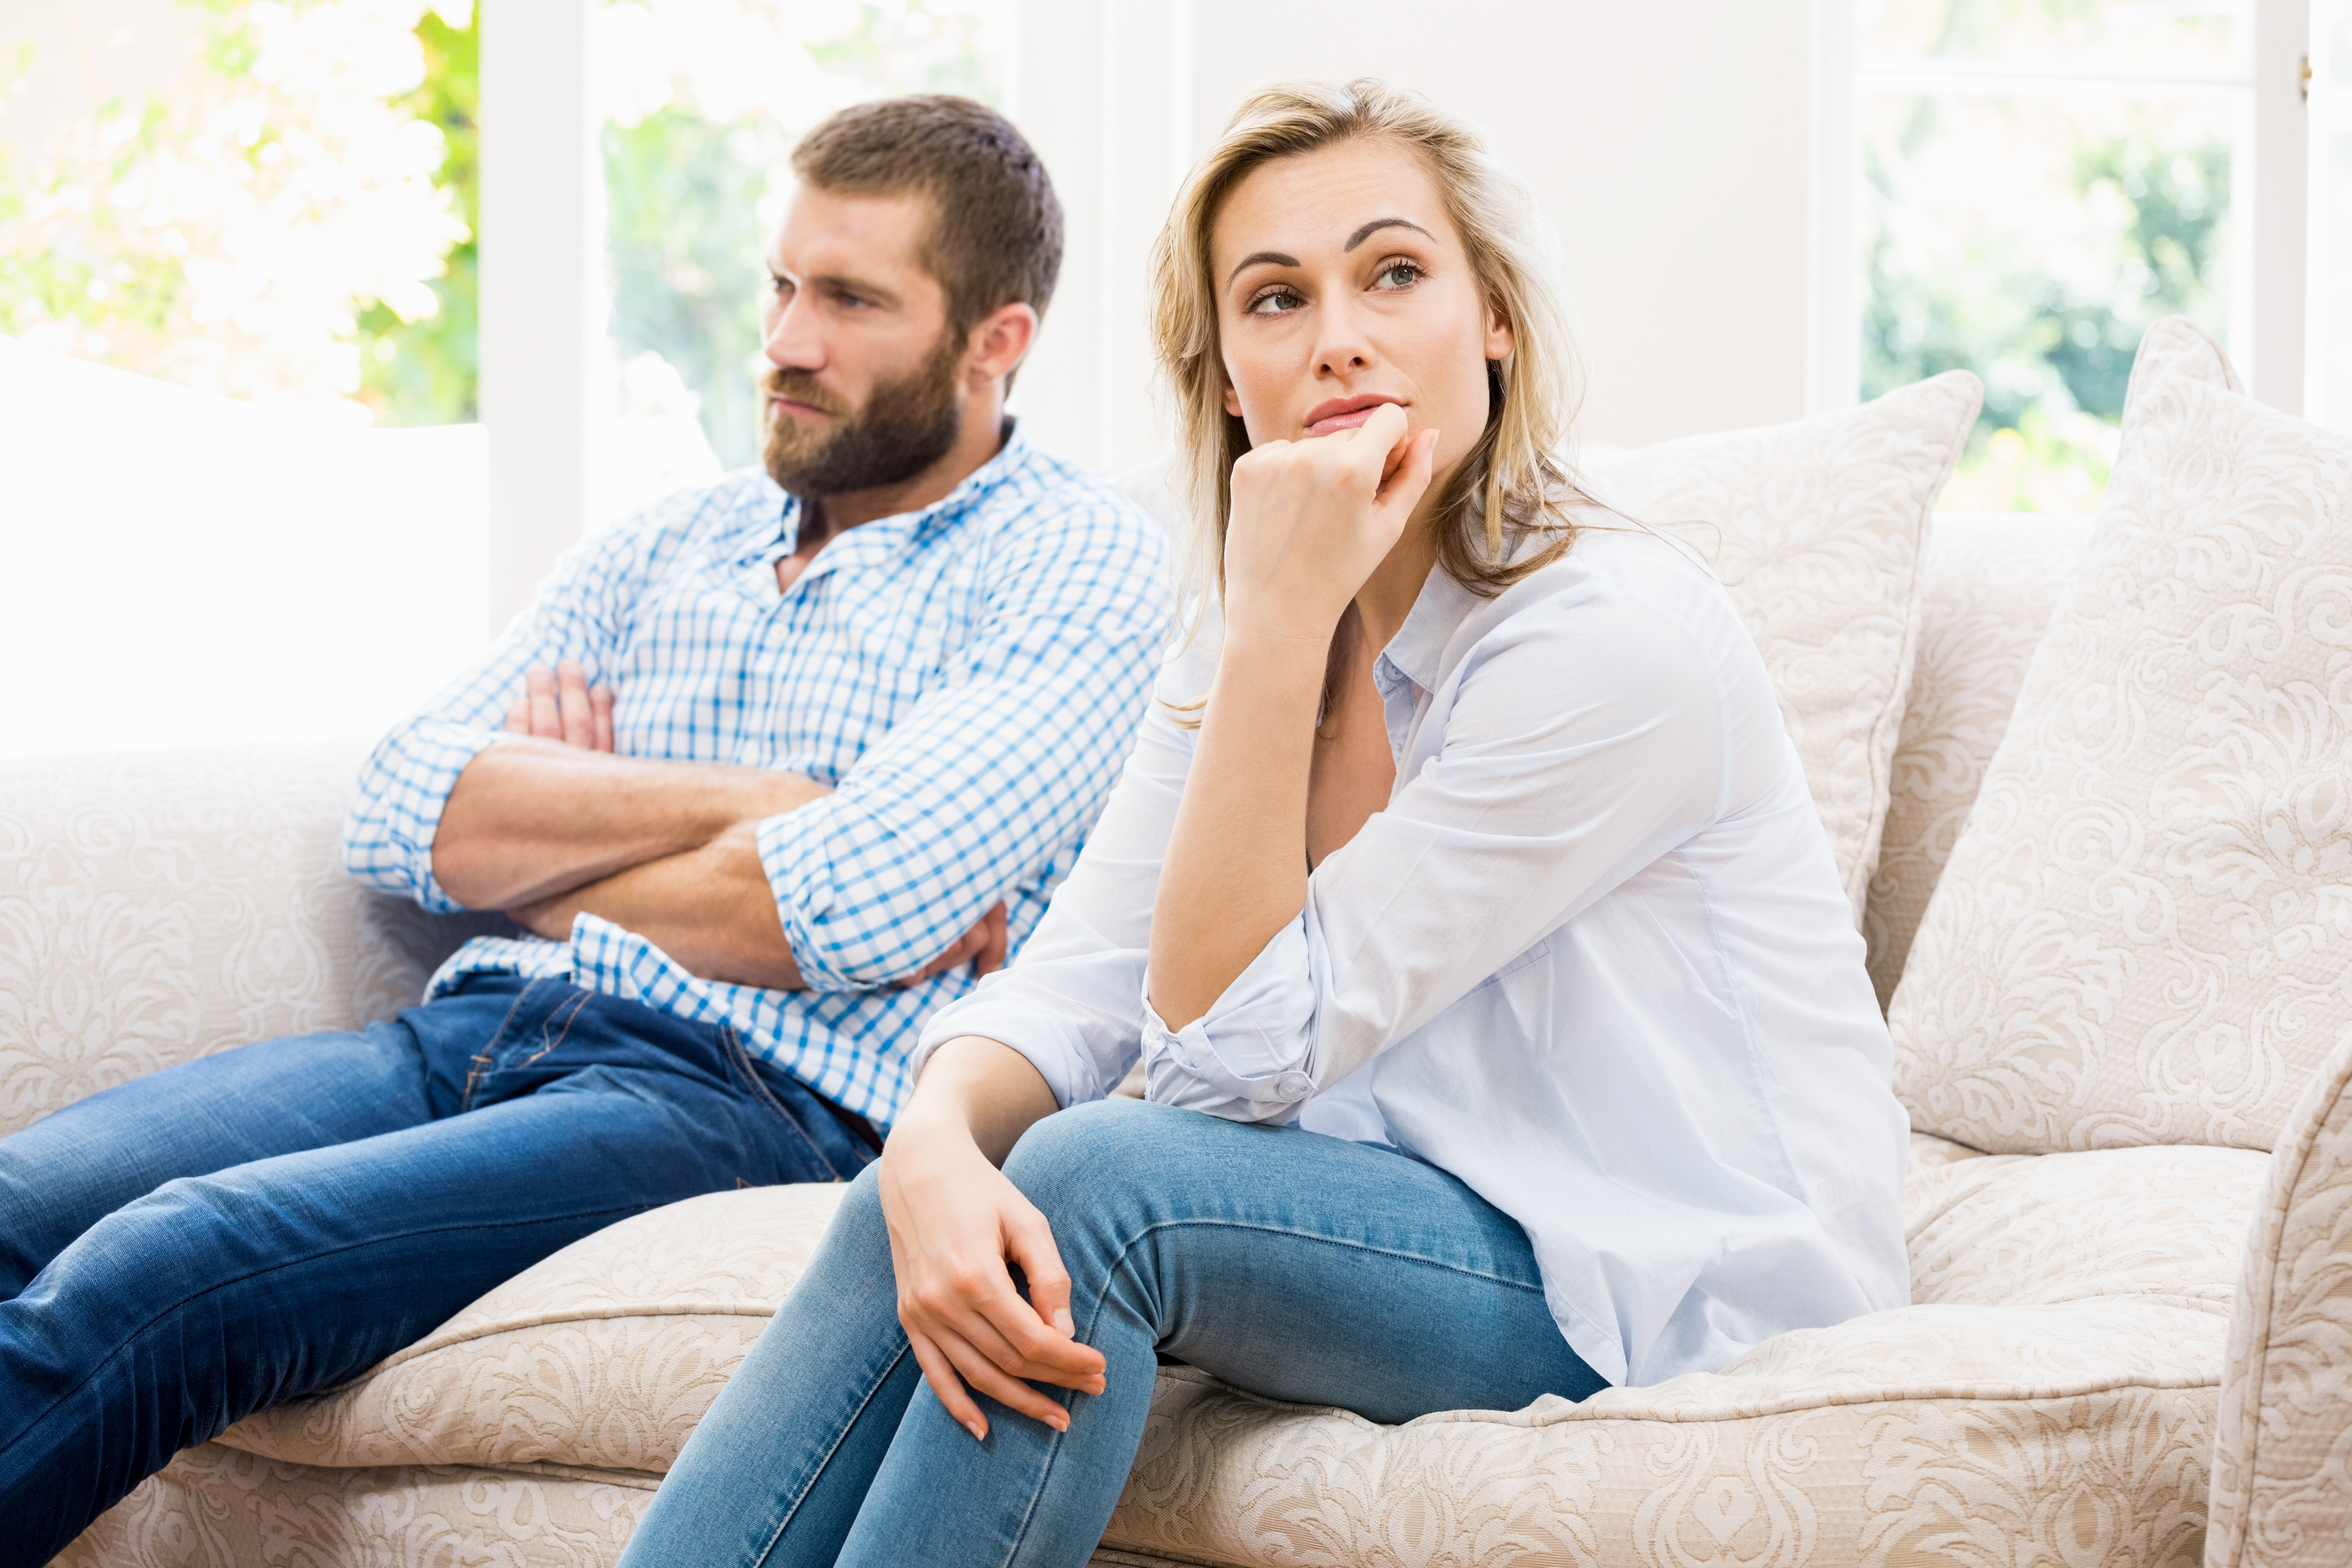 How to Communicate Better with Your Spouse